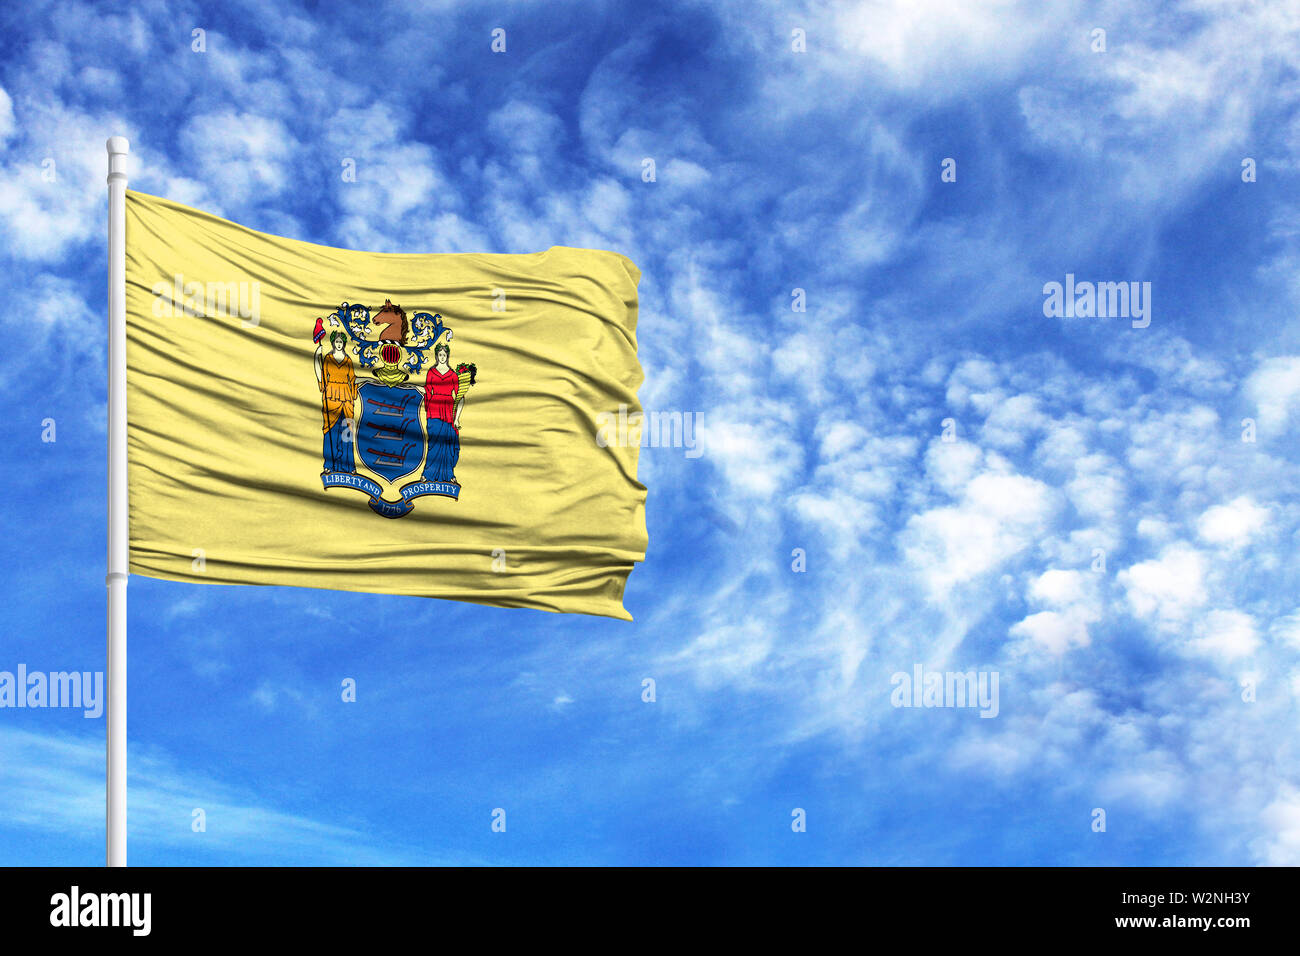 National flag State of New Jersey on a flagpole in front of blue sky - Stock Image